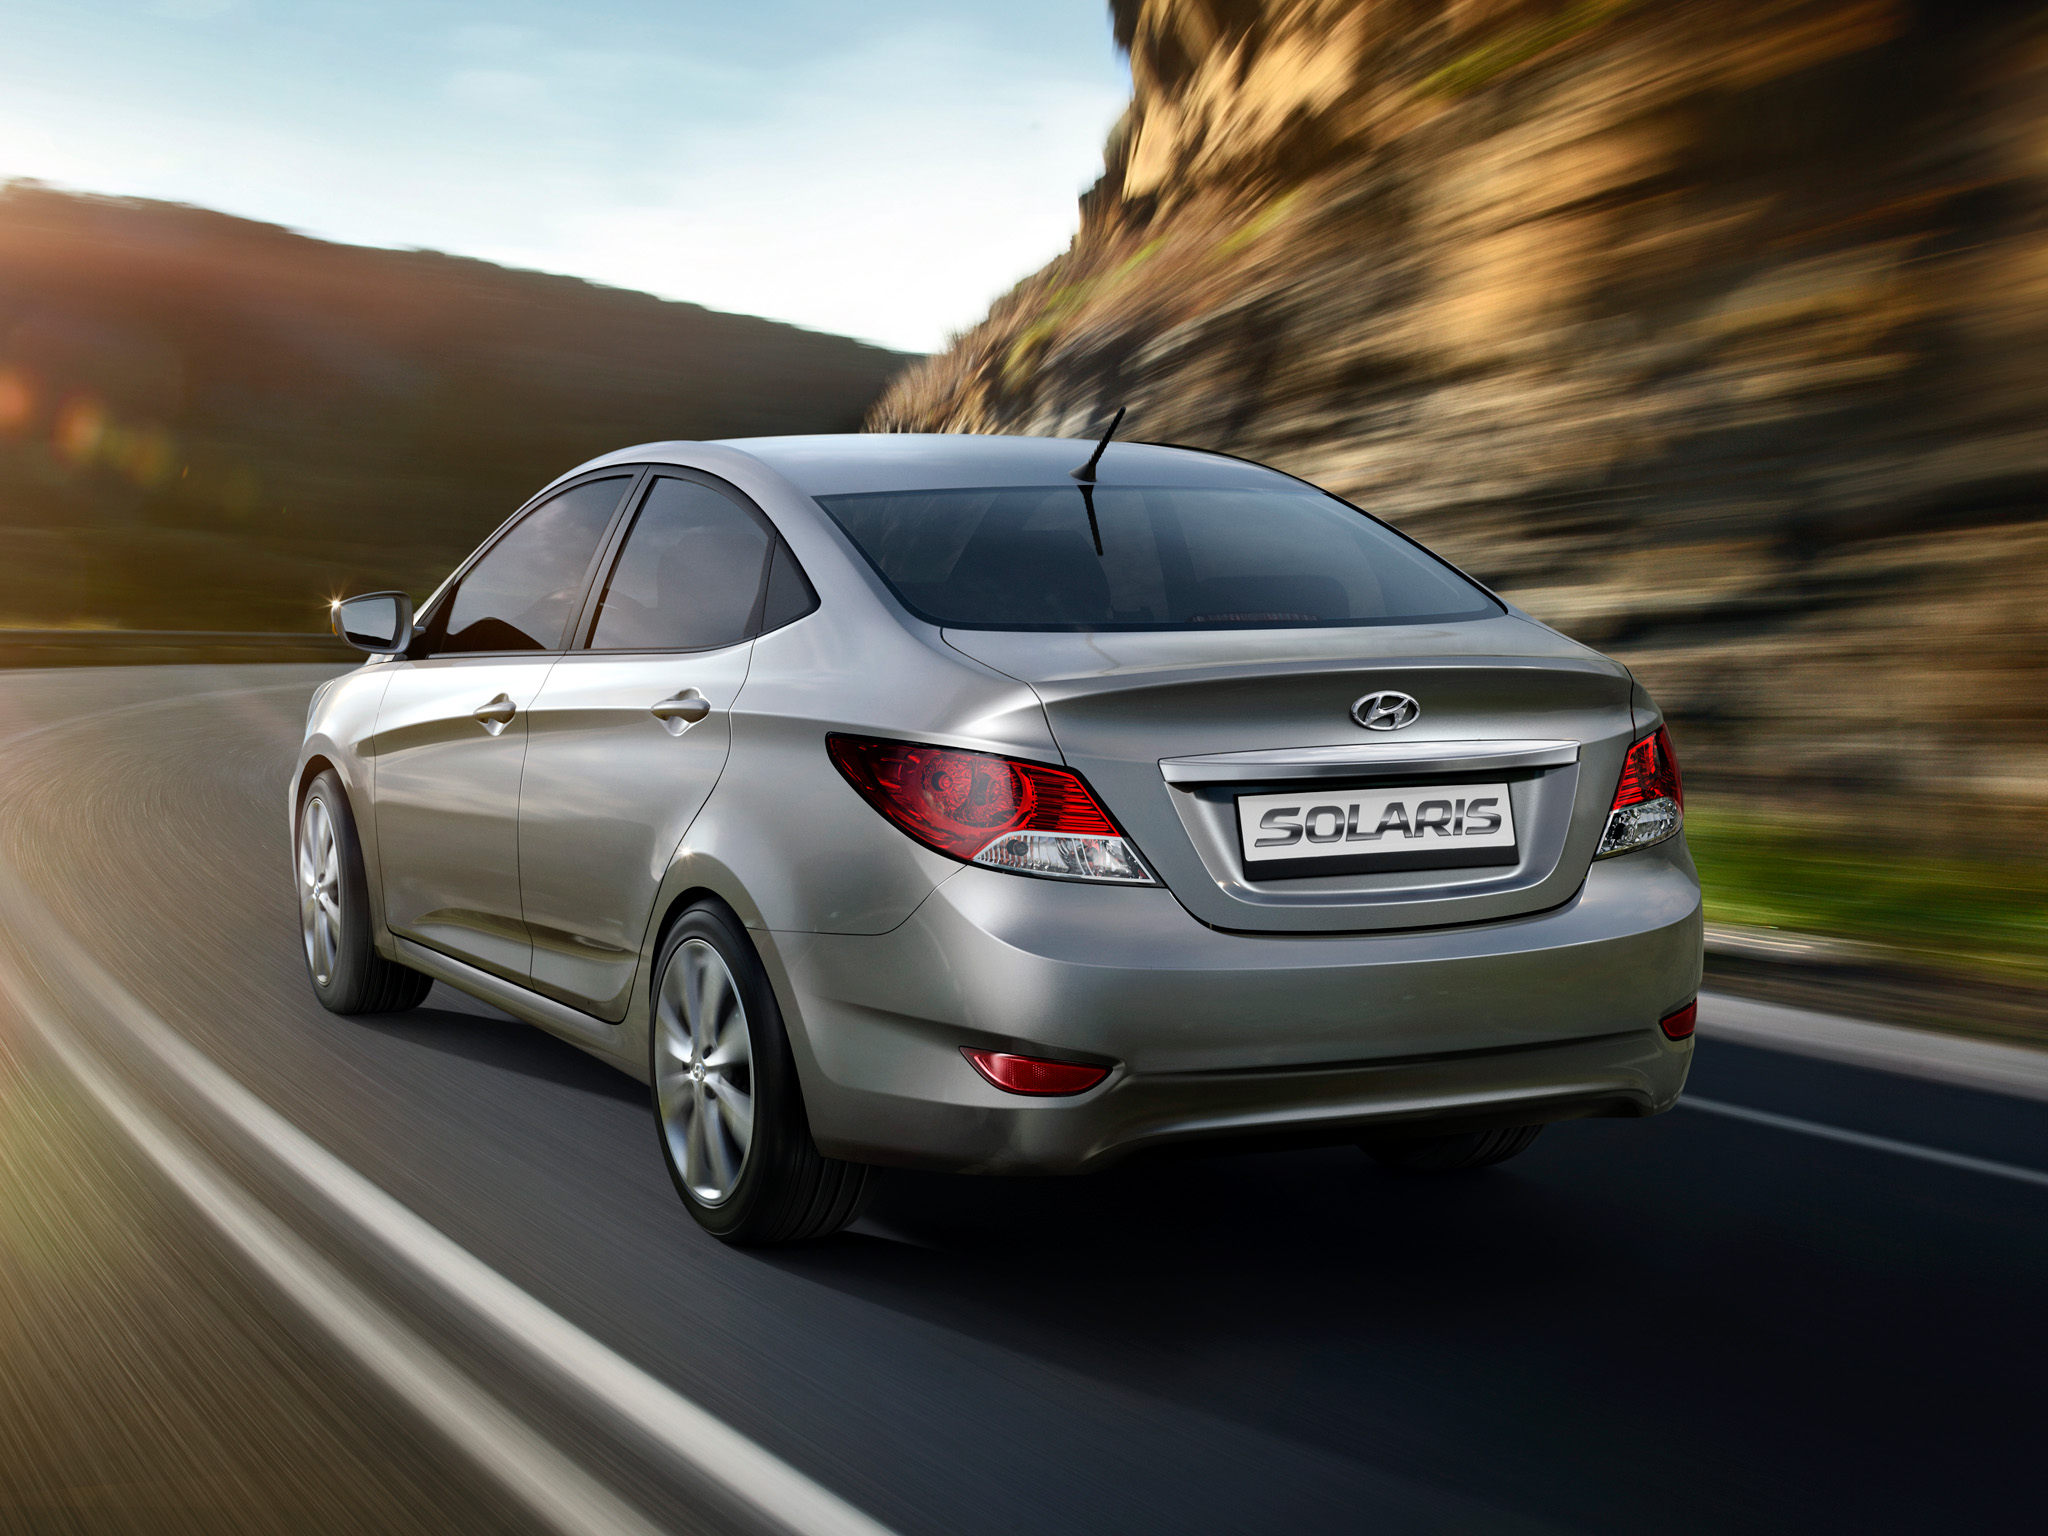 Pictures of hyundai solaris sedan 2012